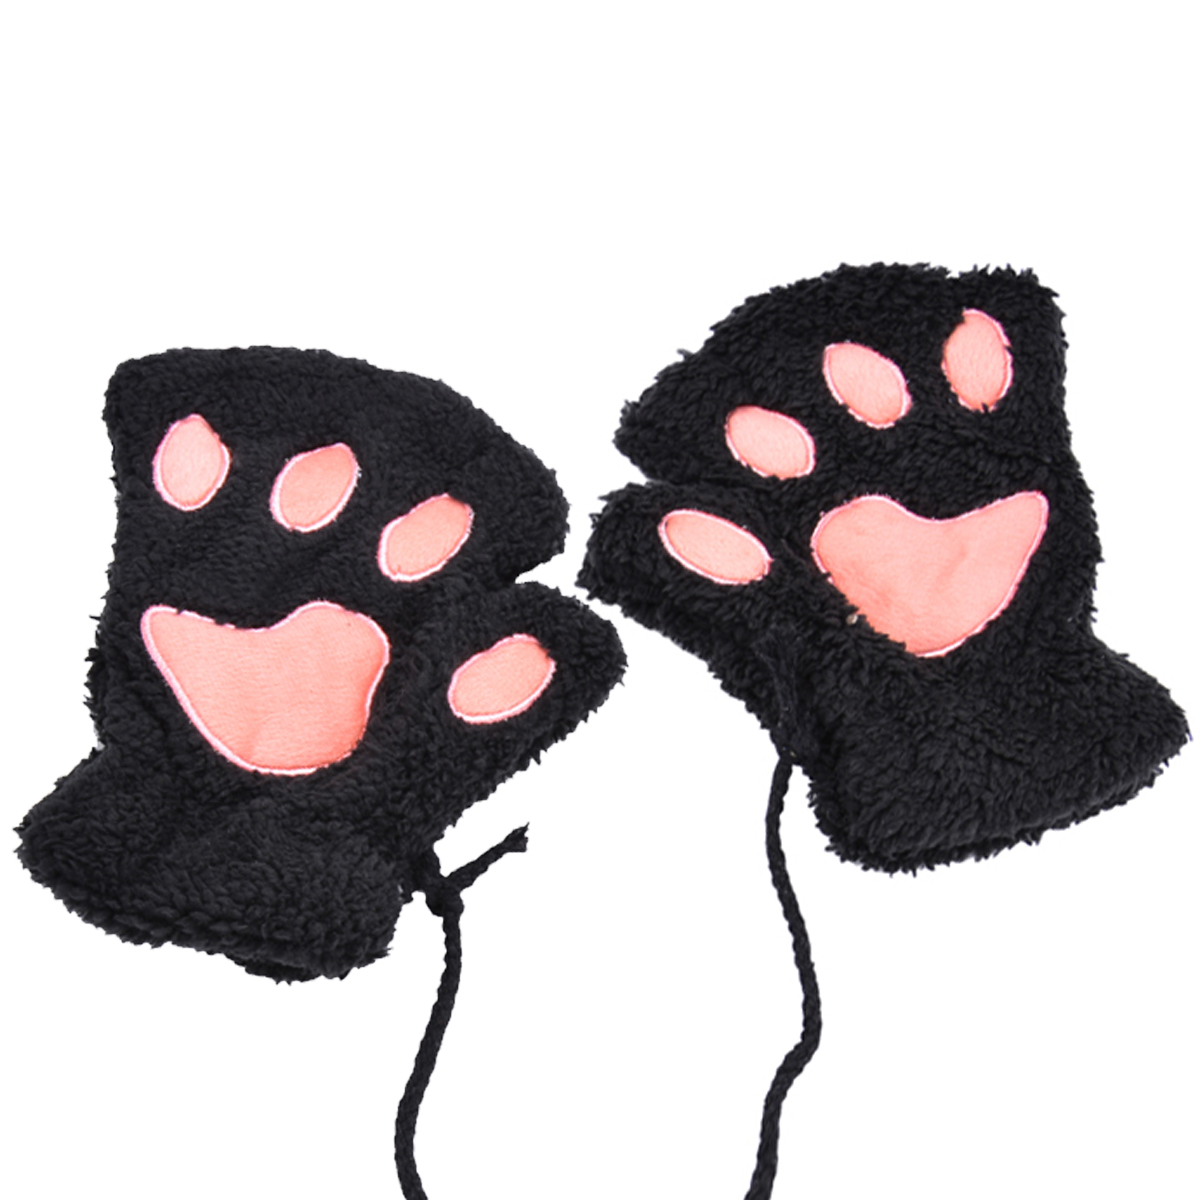 Aniwon Fingerless Gloves Cat Claw Bear Paw Winter Warm Plush Furry Half Finger Gloves for Women Girls